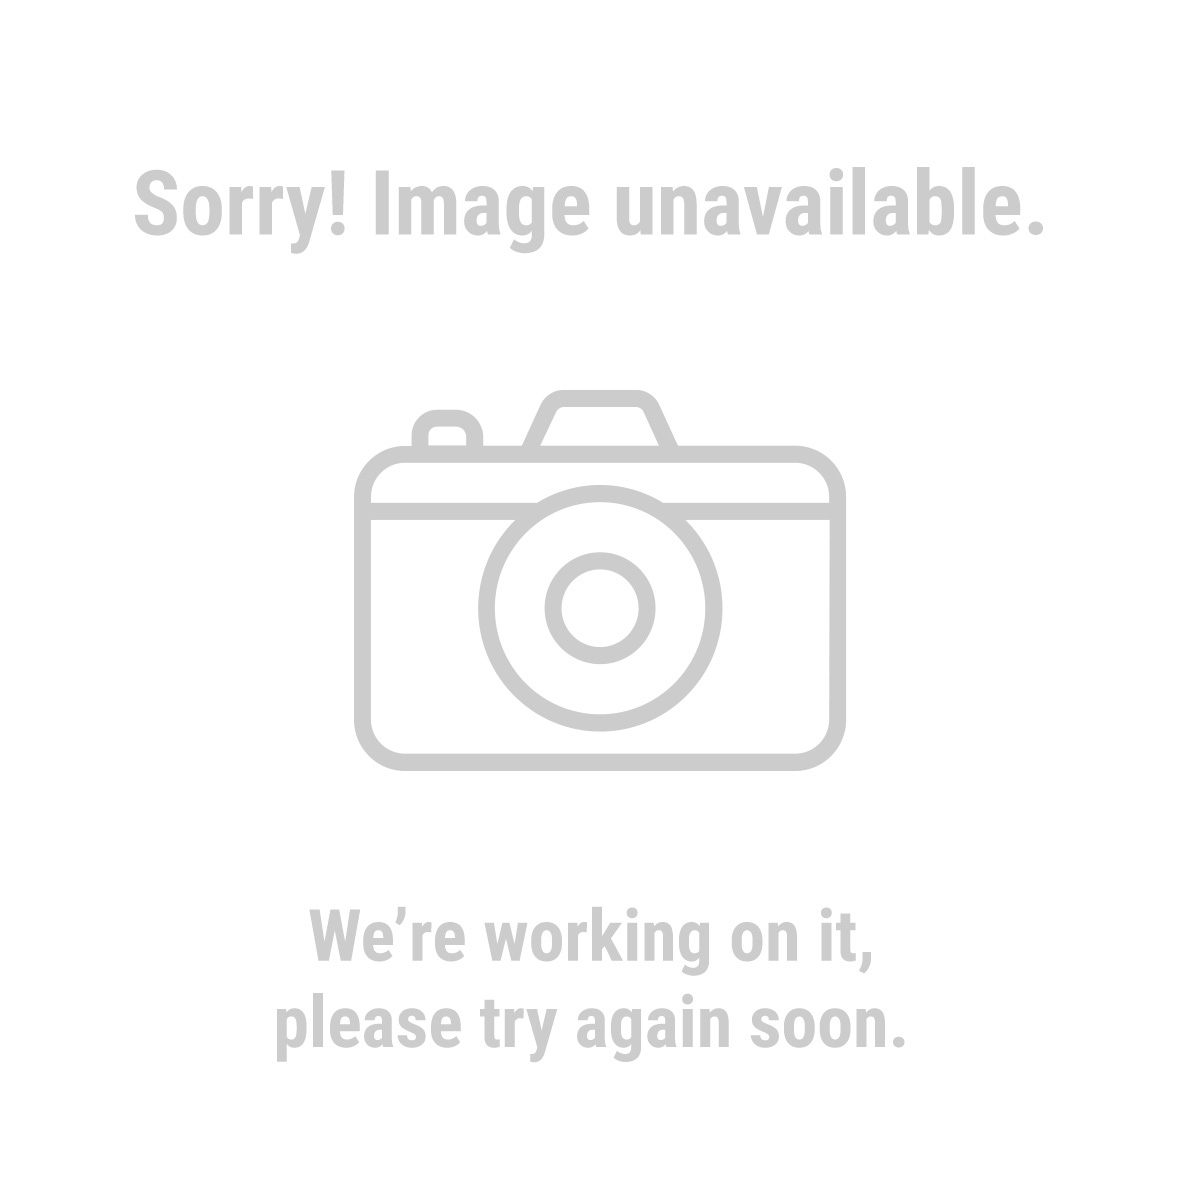 98019 Two Bike Hitch Mount Bike Rack